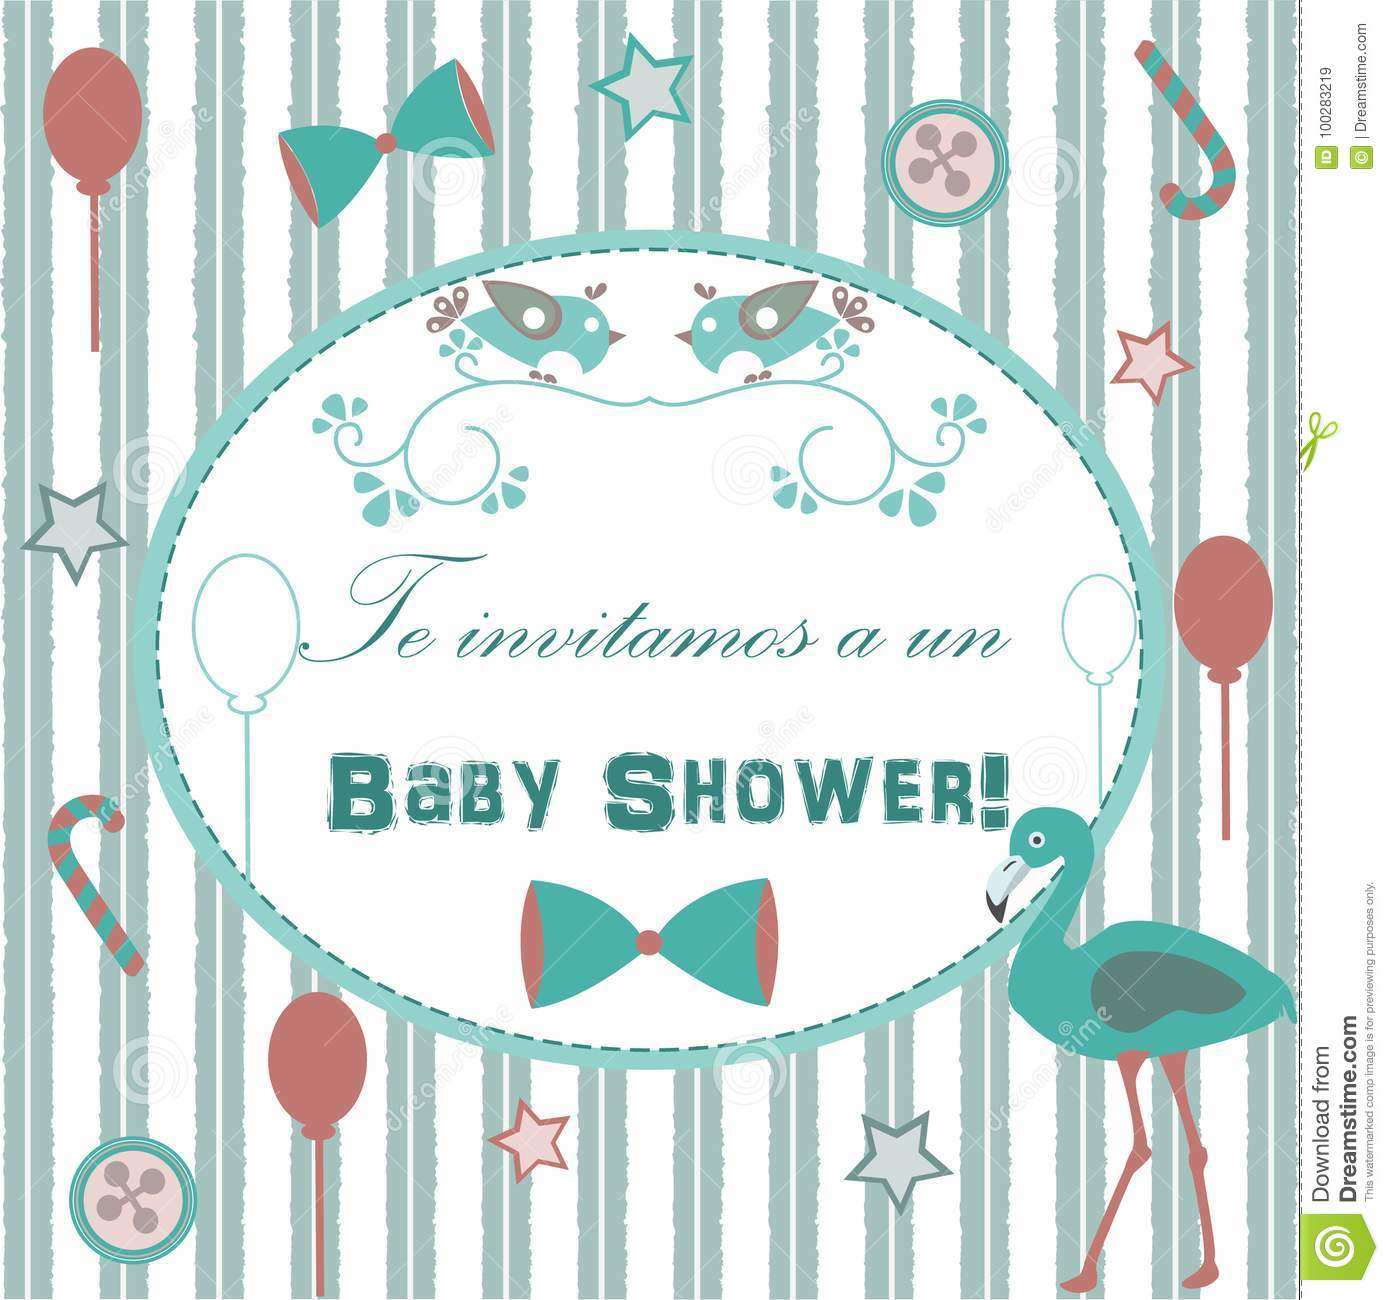 Image Of Baby Shower In Spanish Language Unique Baby Shower Games In ...